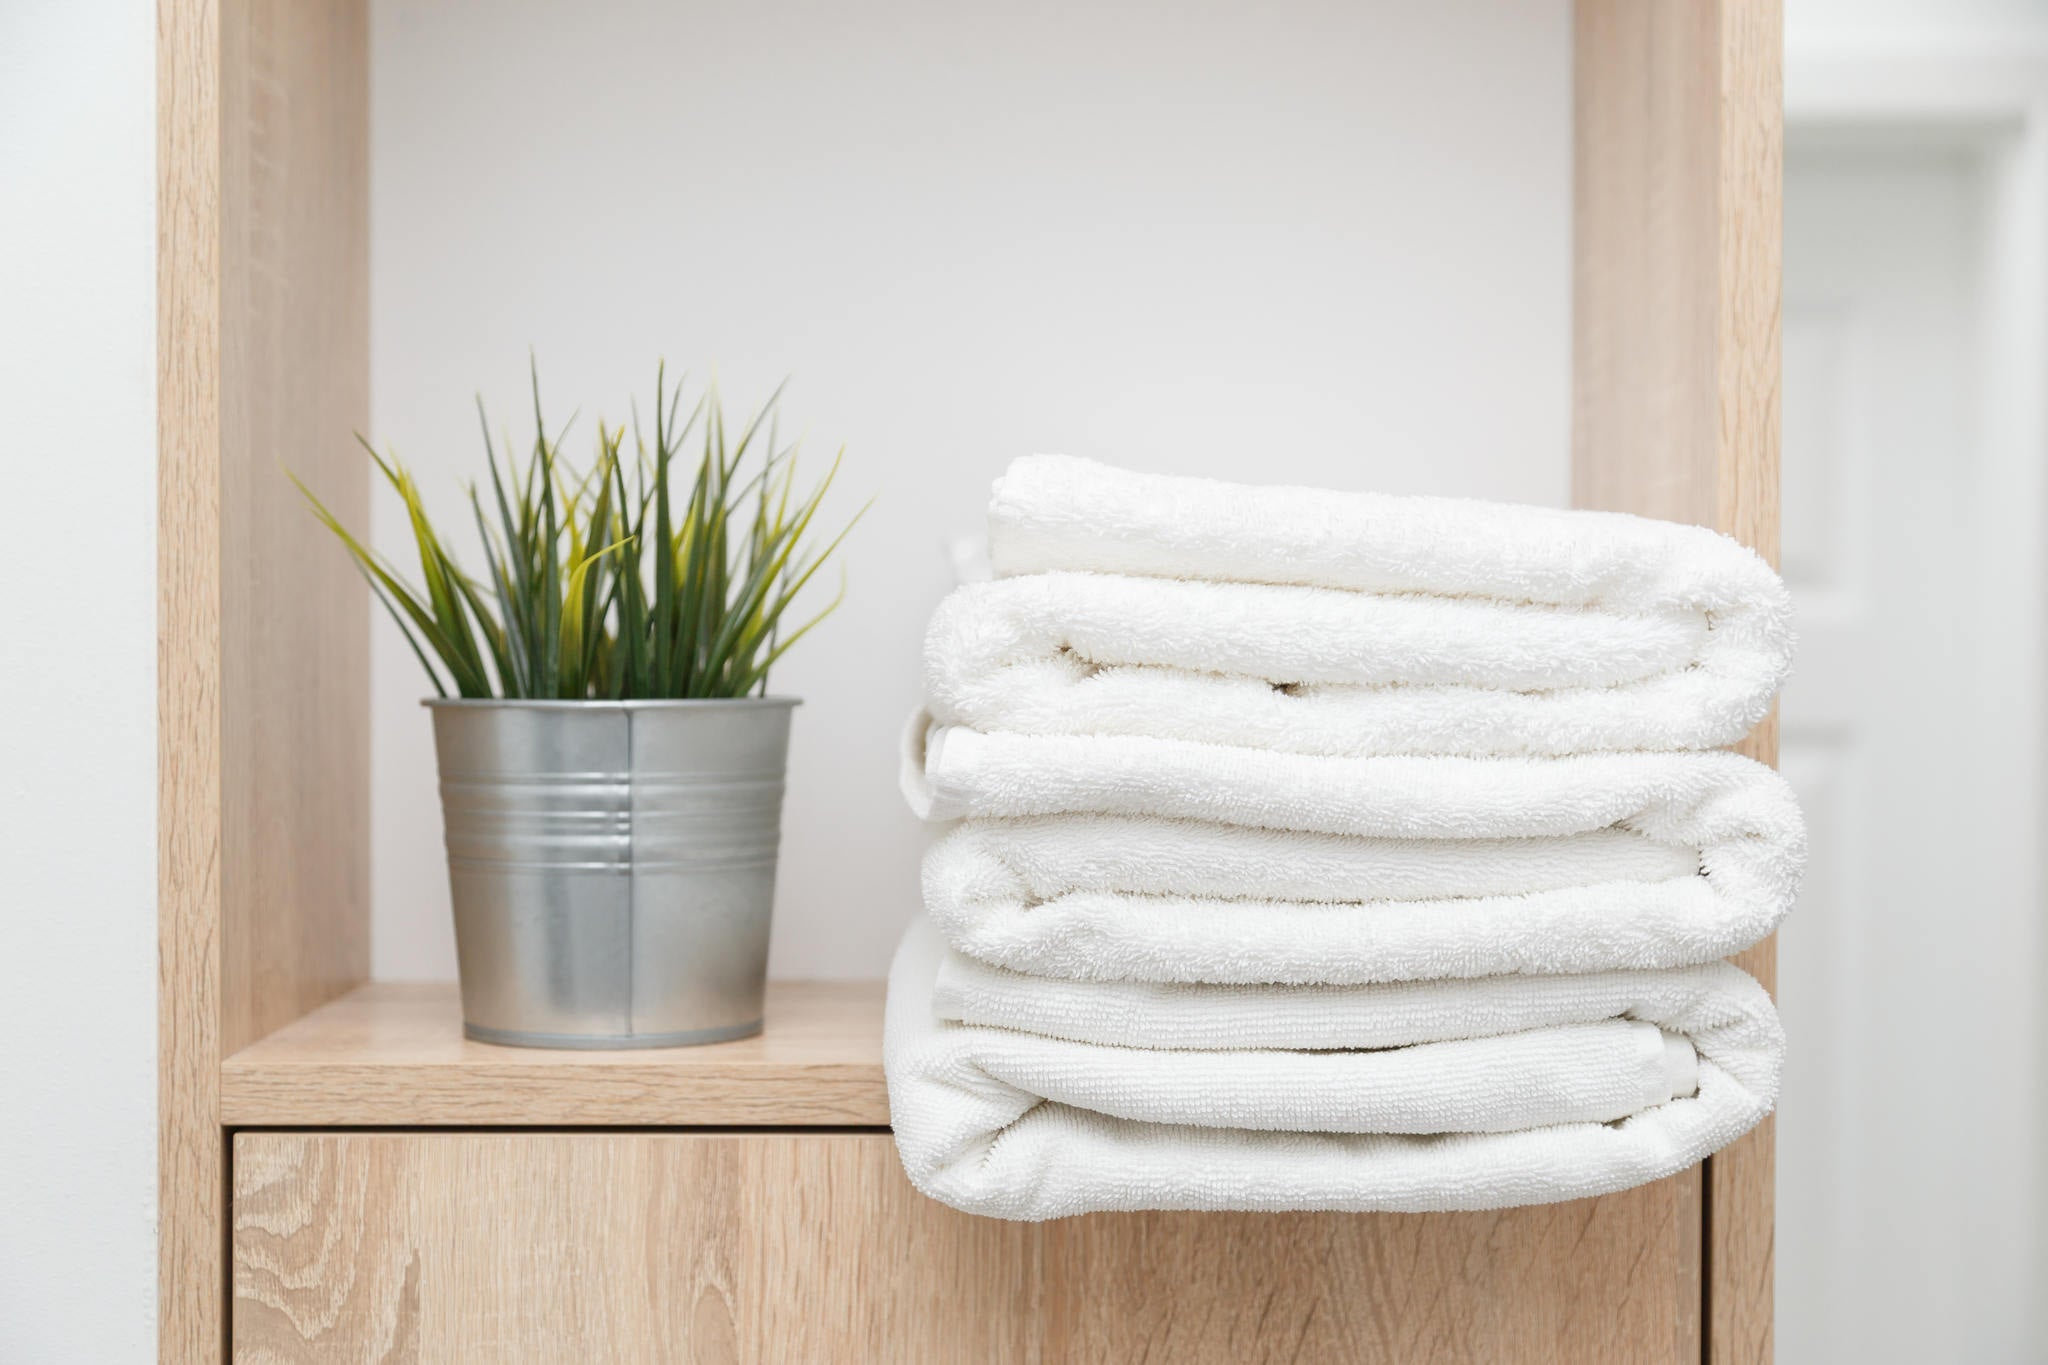 Bath towels on shelf